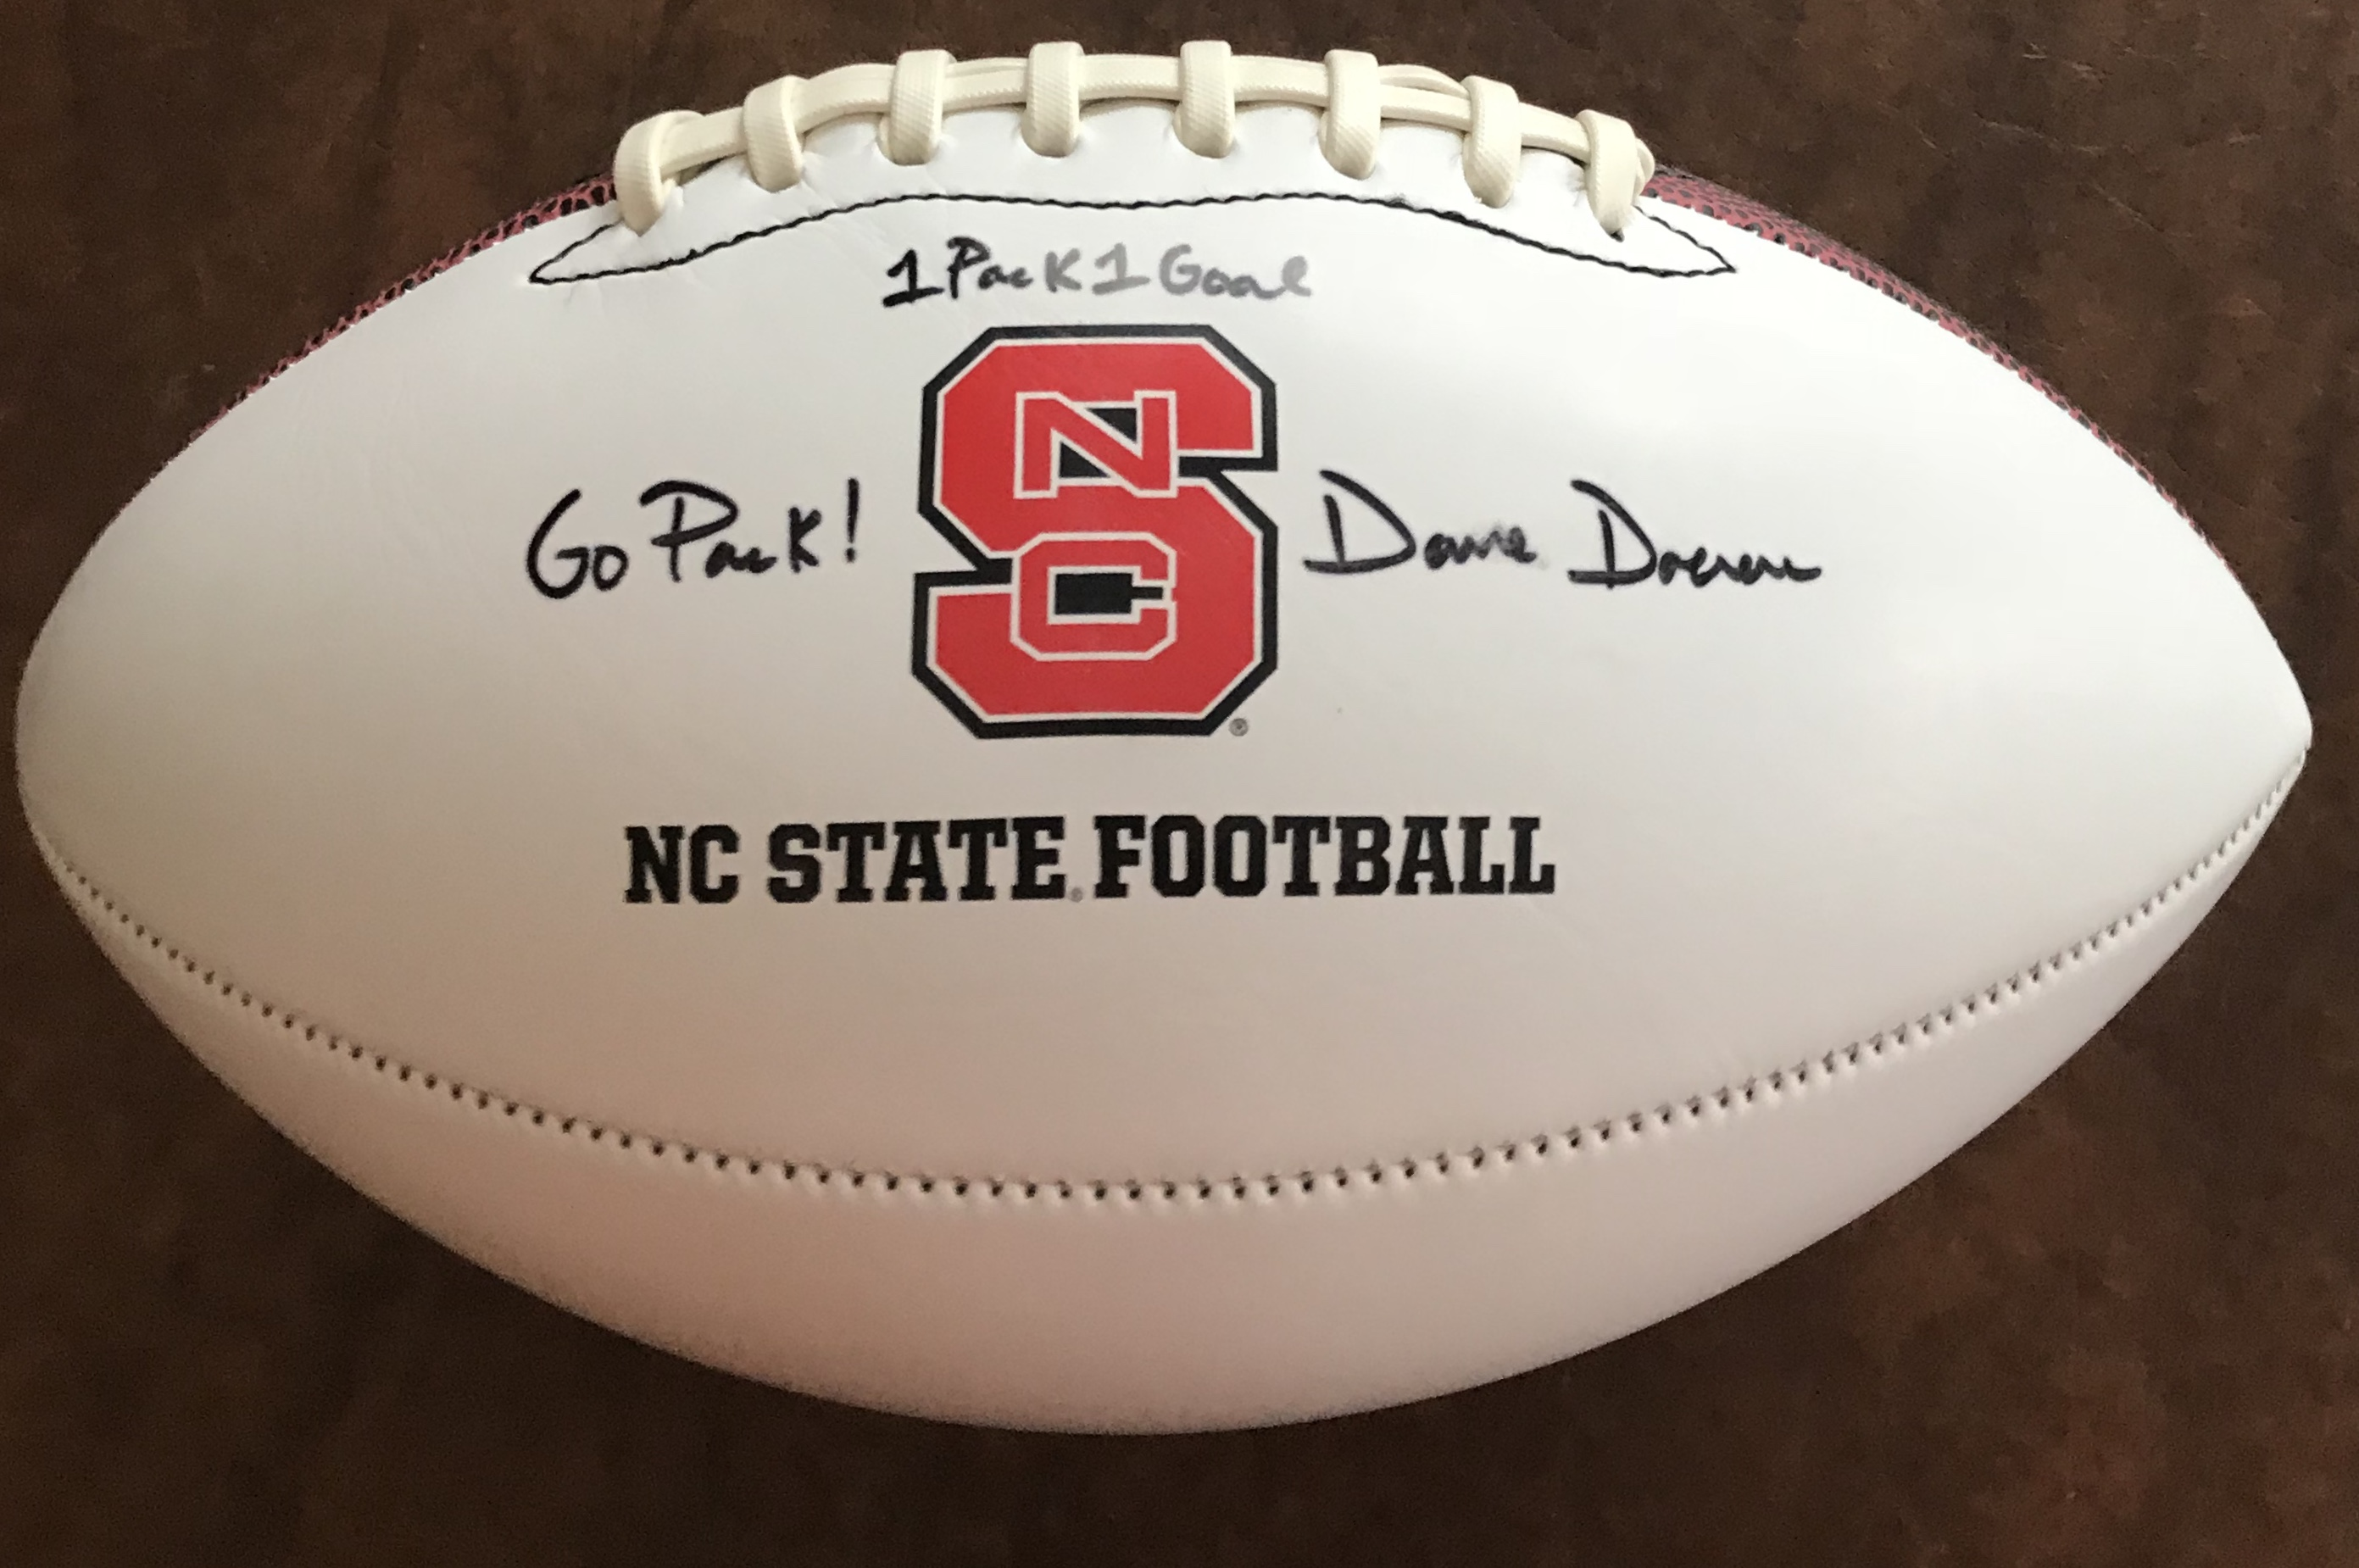 Dave Doeren NC State Football